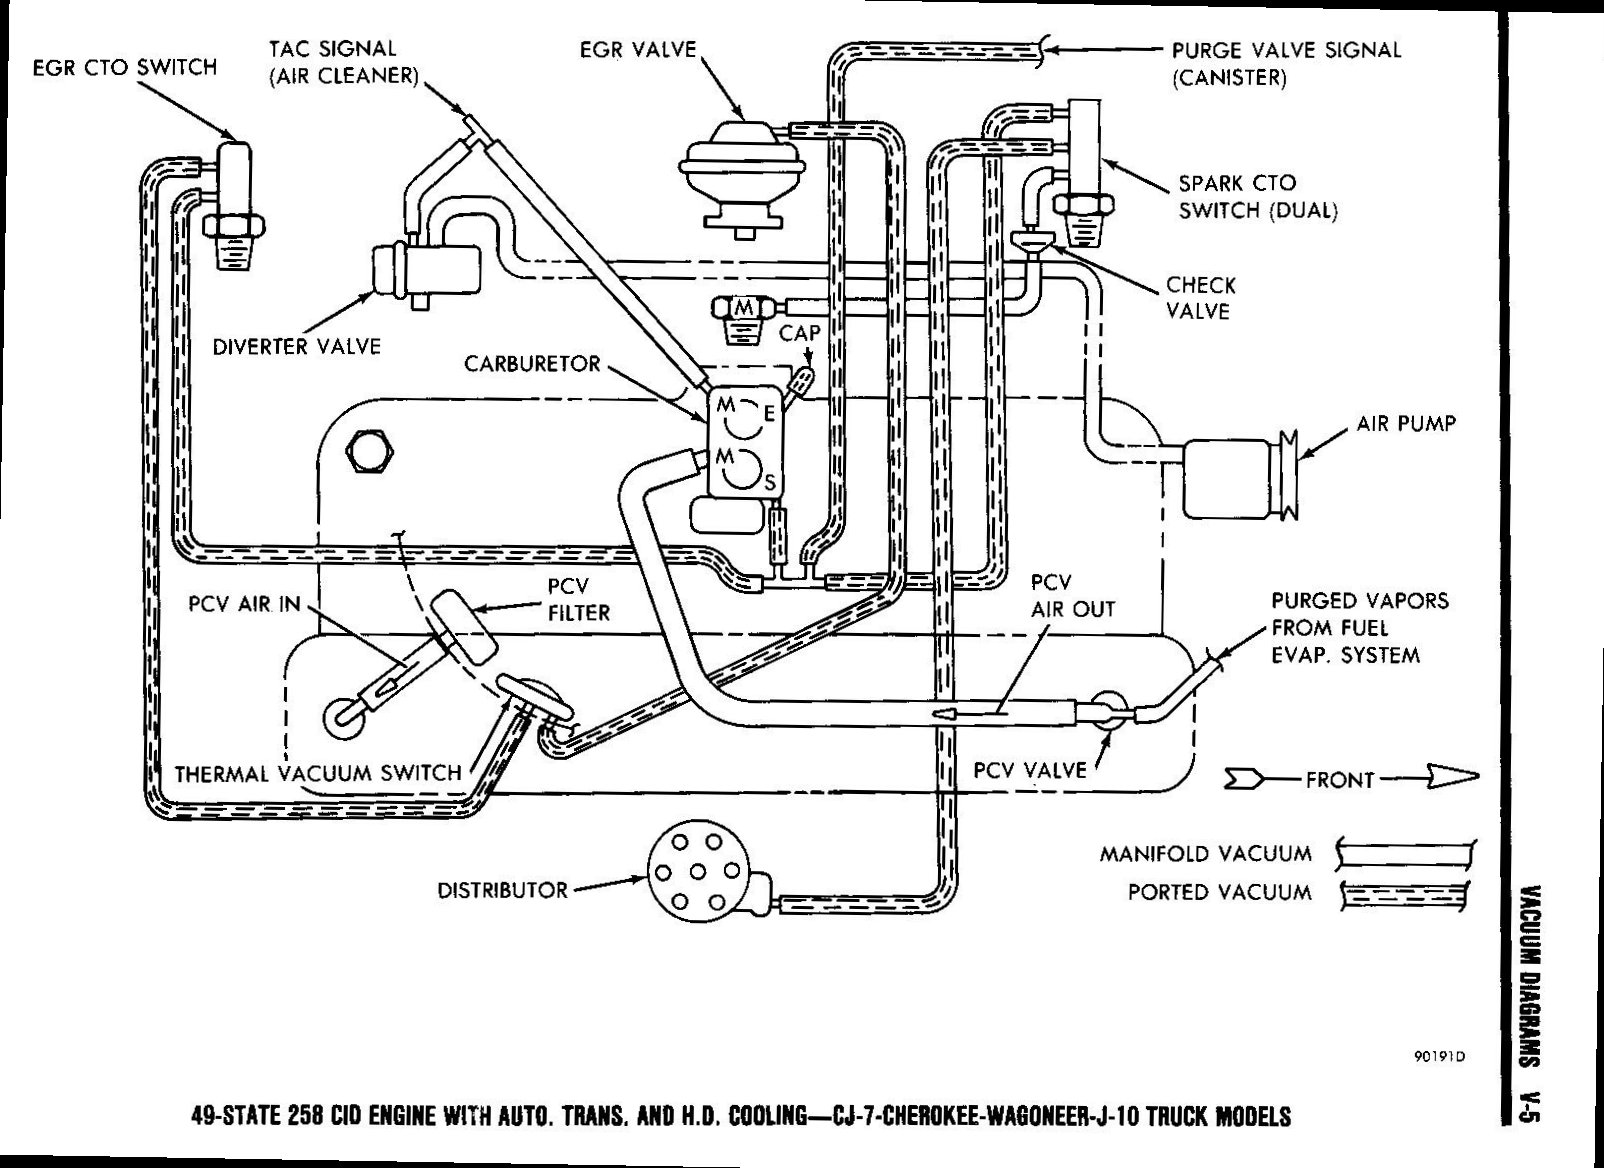 hight resolution of 79 jeep heater diagram wiring diagram schematics jeep heater core 1981 cj7 heater diagram wiring diagram